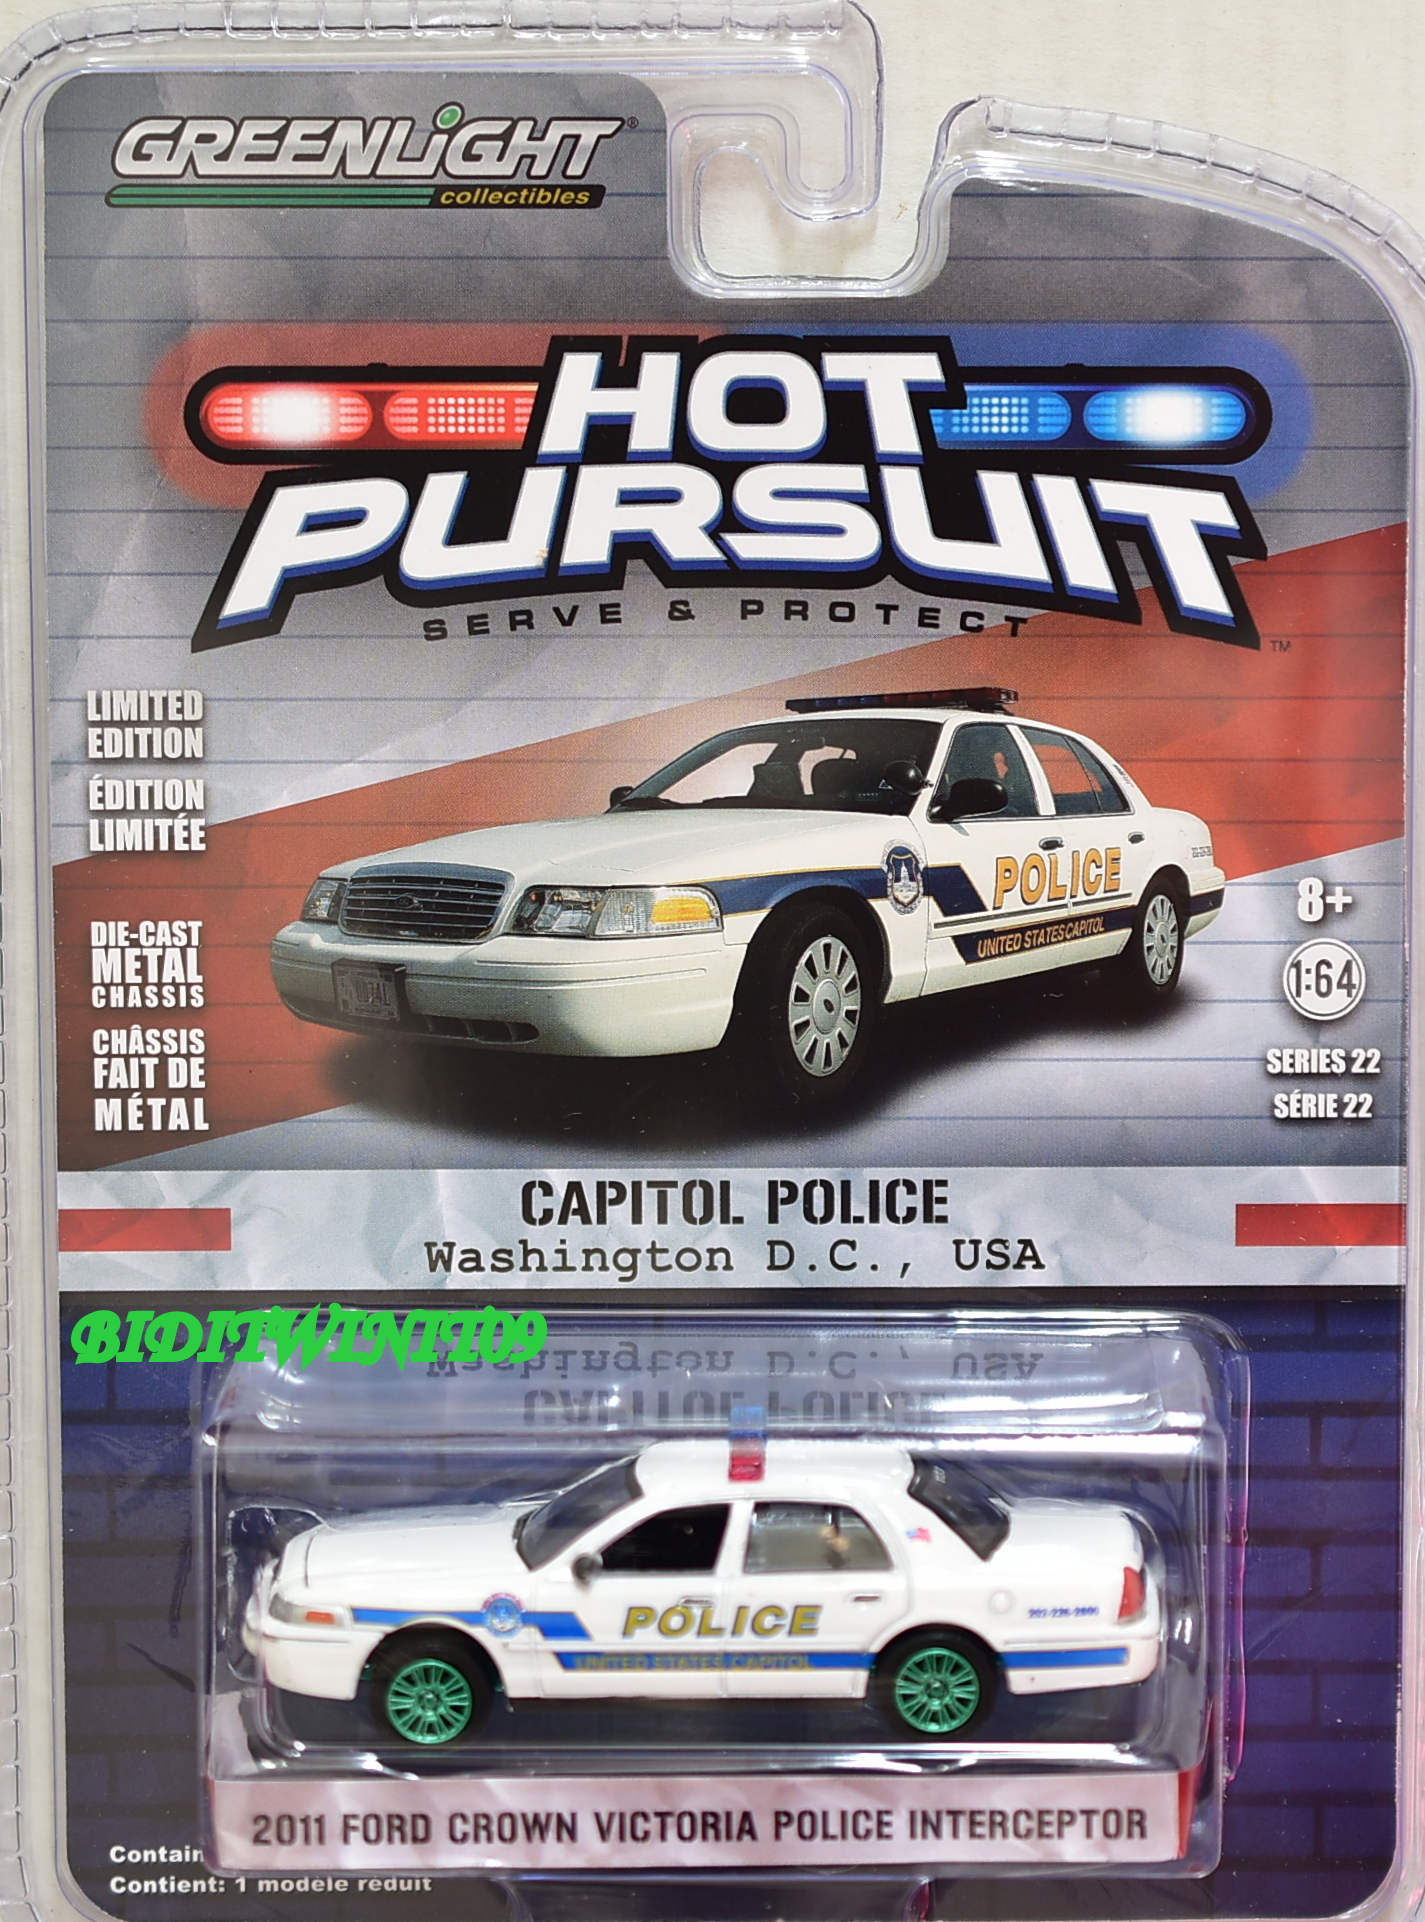 GREENLIGHT GREEN MACHINE 2011 FORD CROWN VICTORIA POLICE INTERCEPTOR SERIES 22